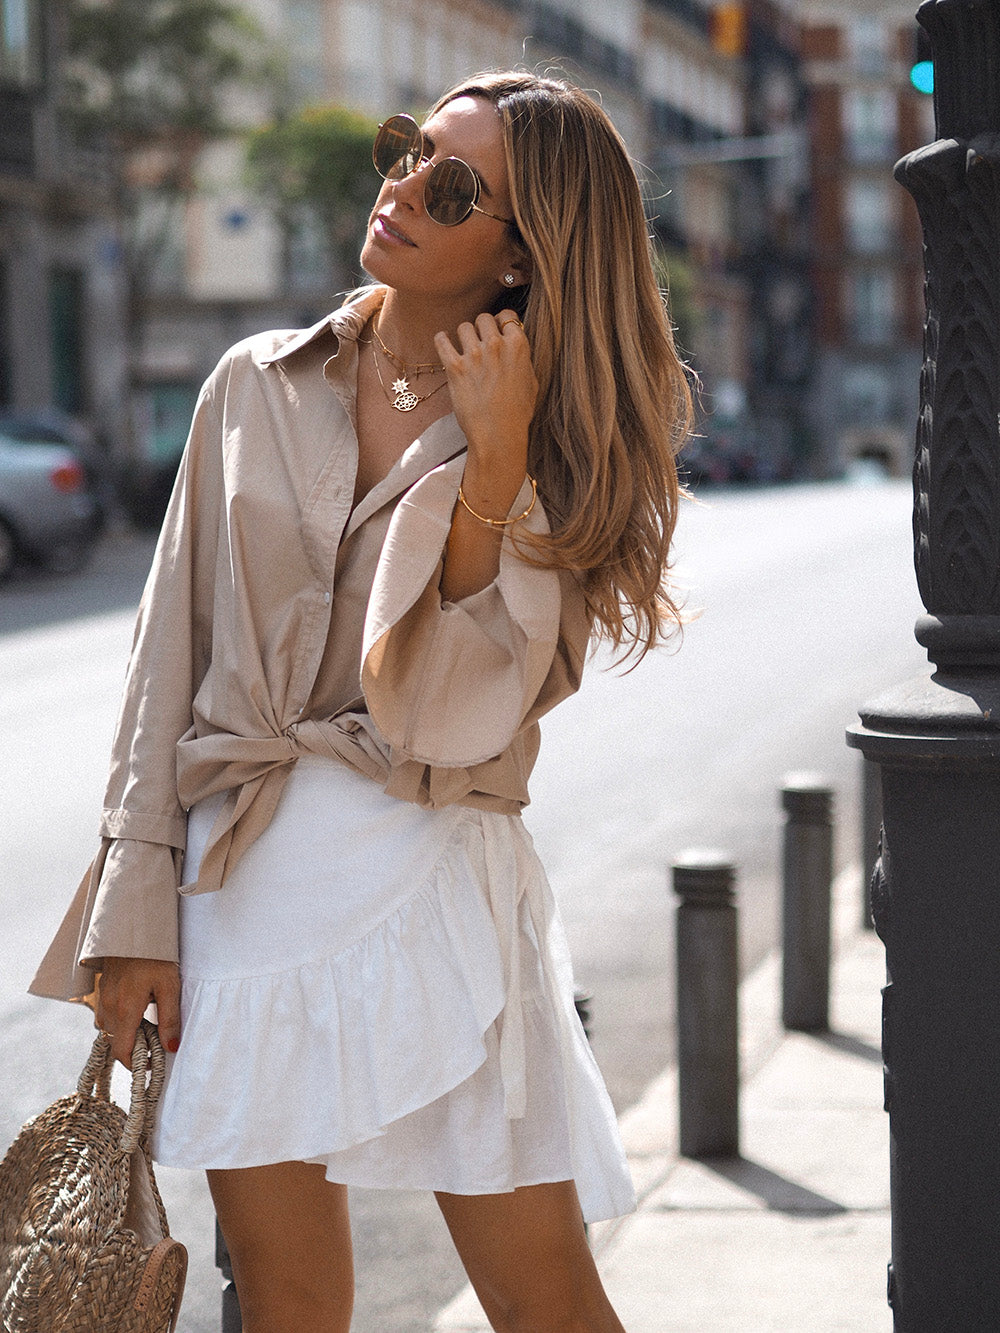 Camisa-Beige-Influencer-Looks